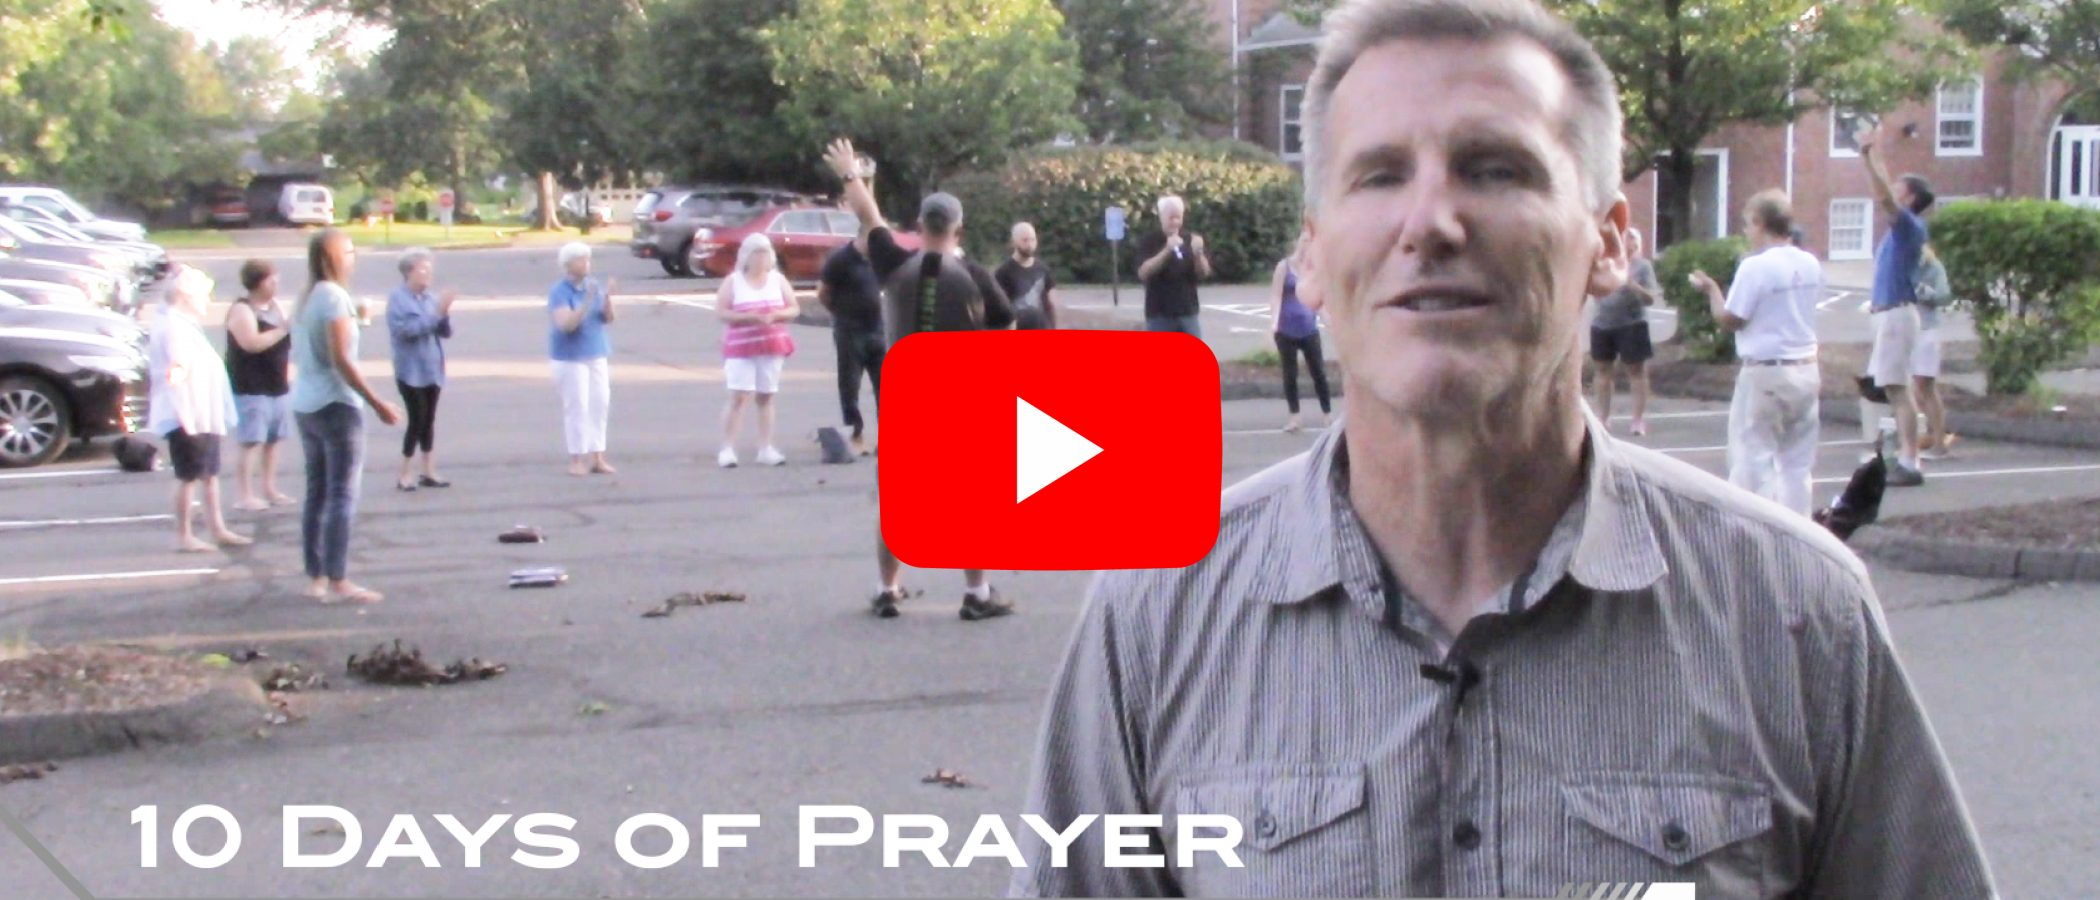 10-days-of-prayer-ct-10brd-dq2020-web-banner_blue_date-and-subtitle2x-100